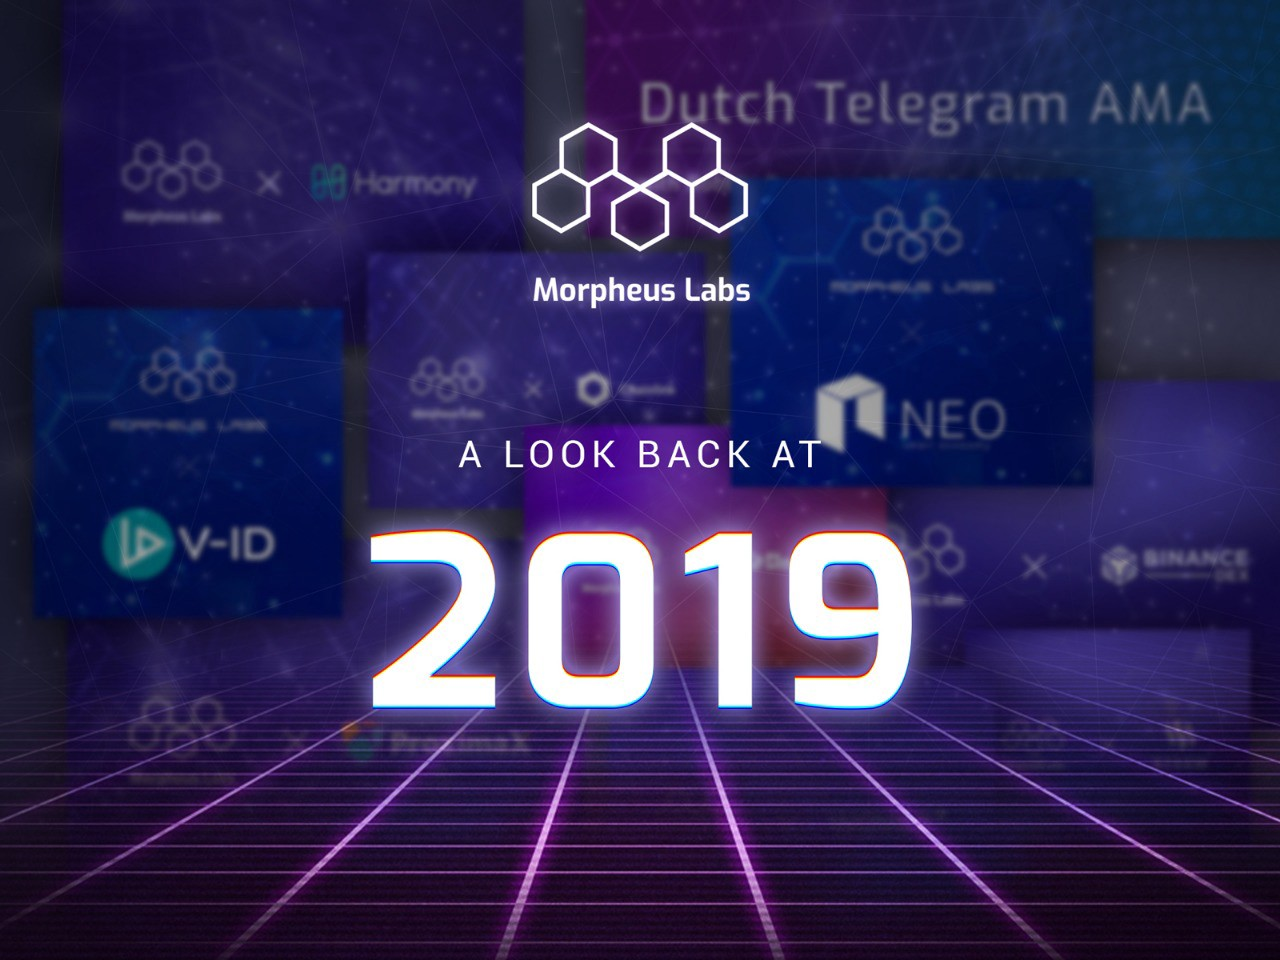 Morpheus Labs' Year-End Roundup 2019